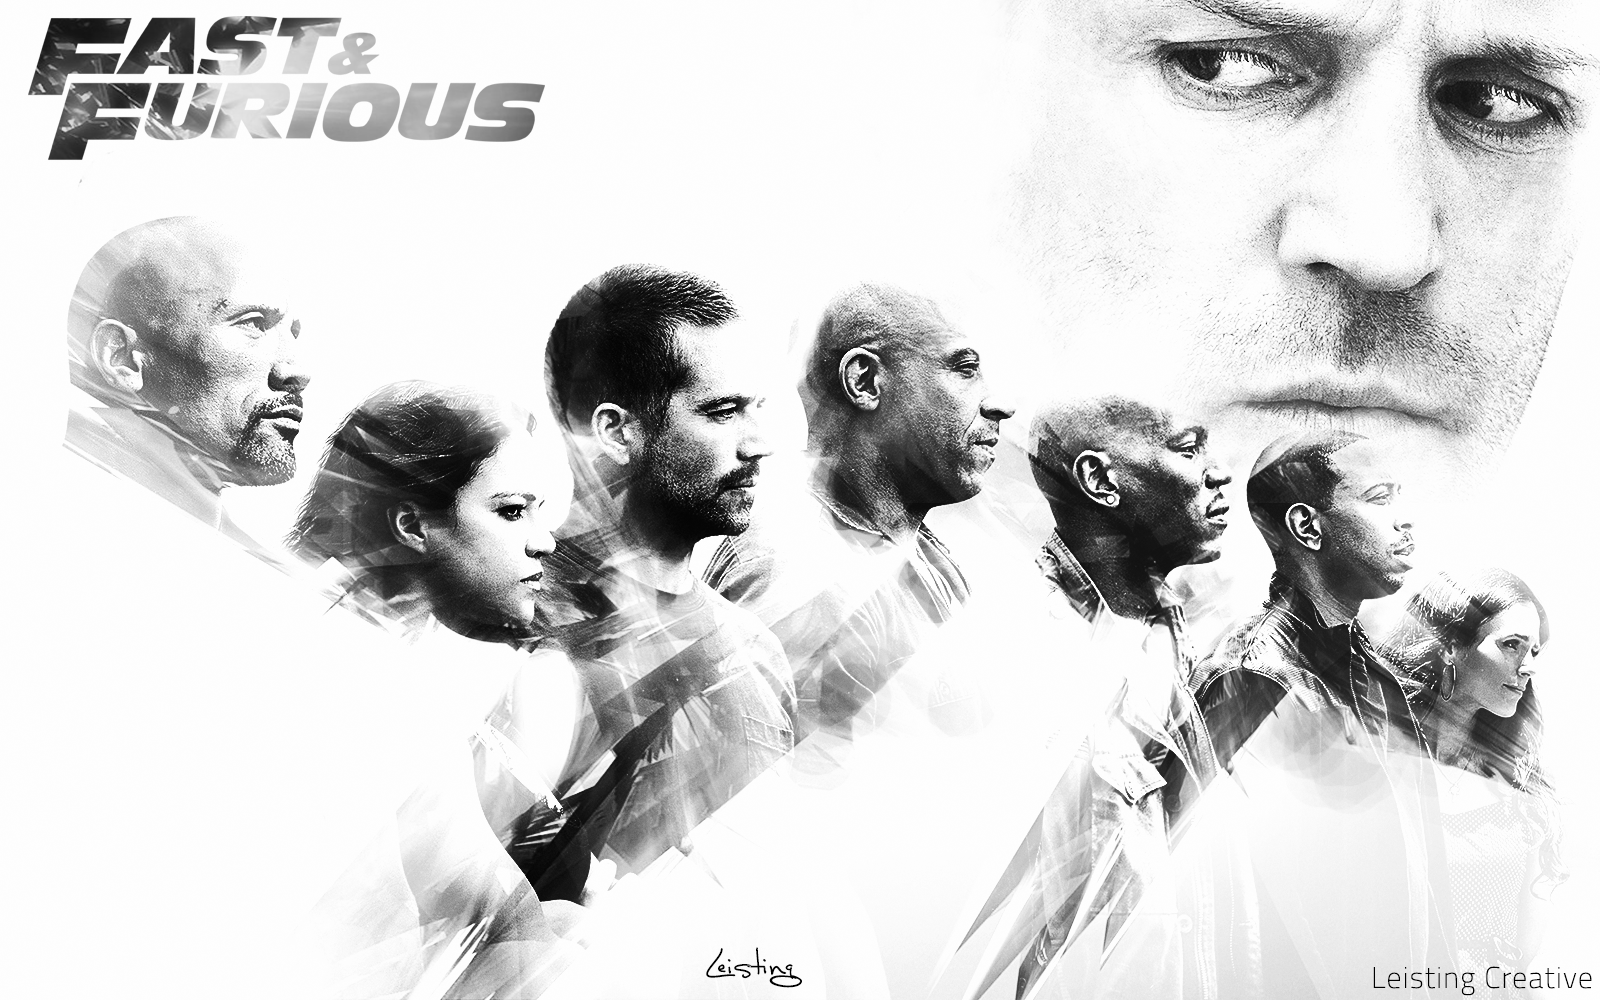 Fast and furious 7 wallpaper by leistingcreative on deviantart - Furious 8 wallpaper ...